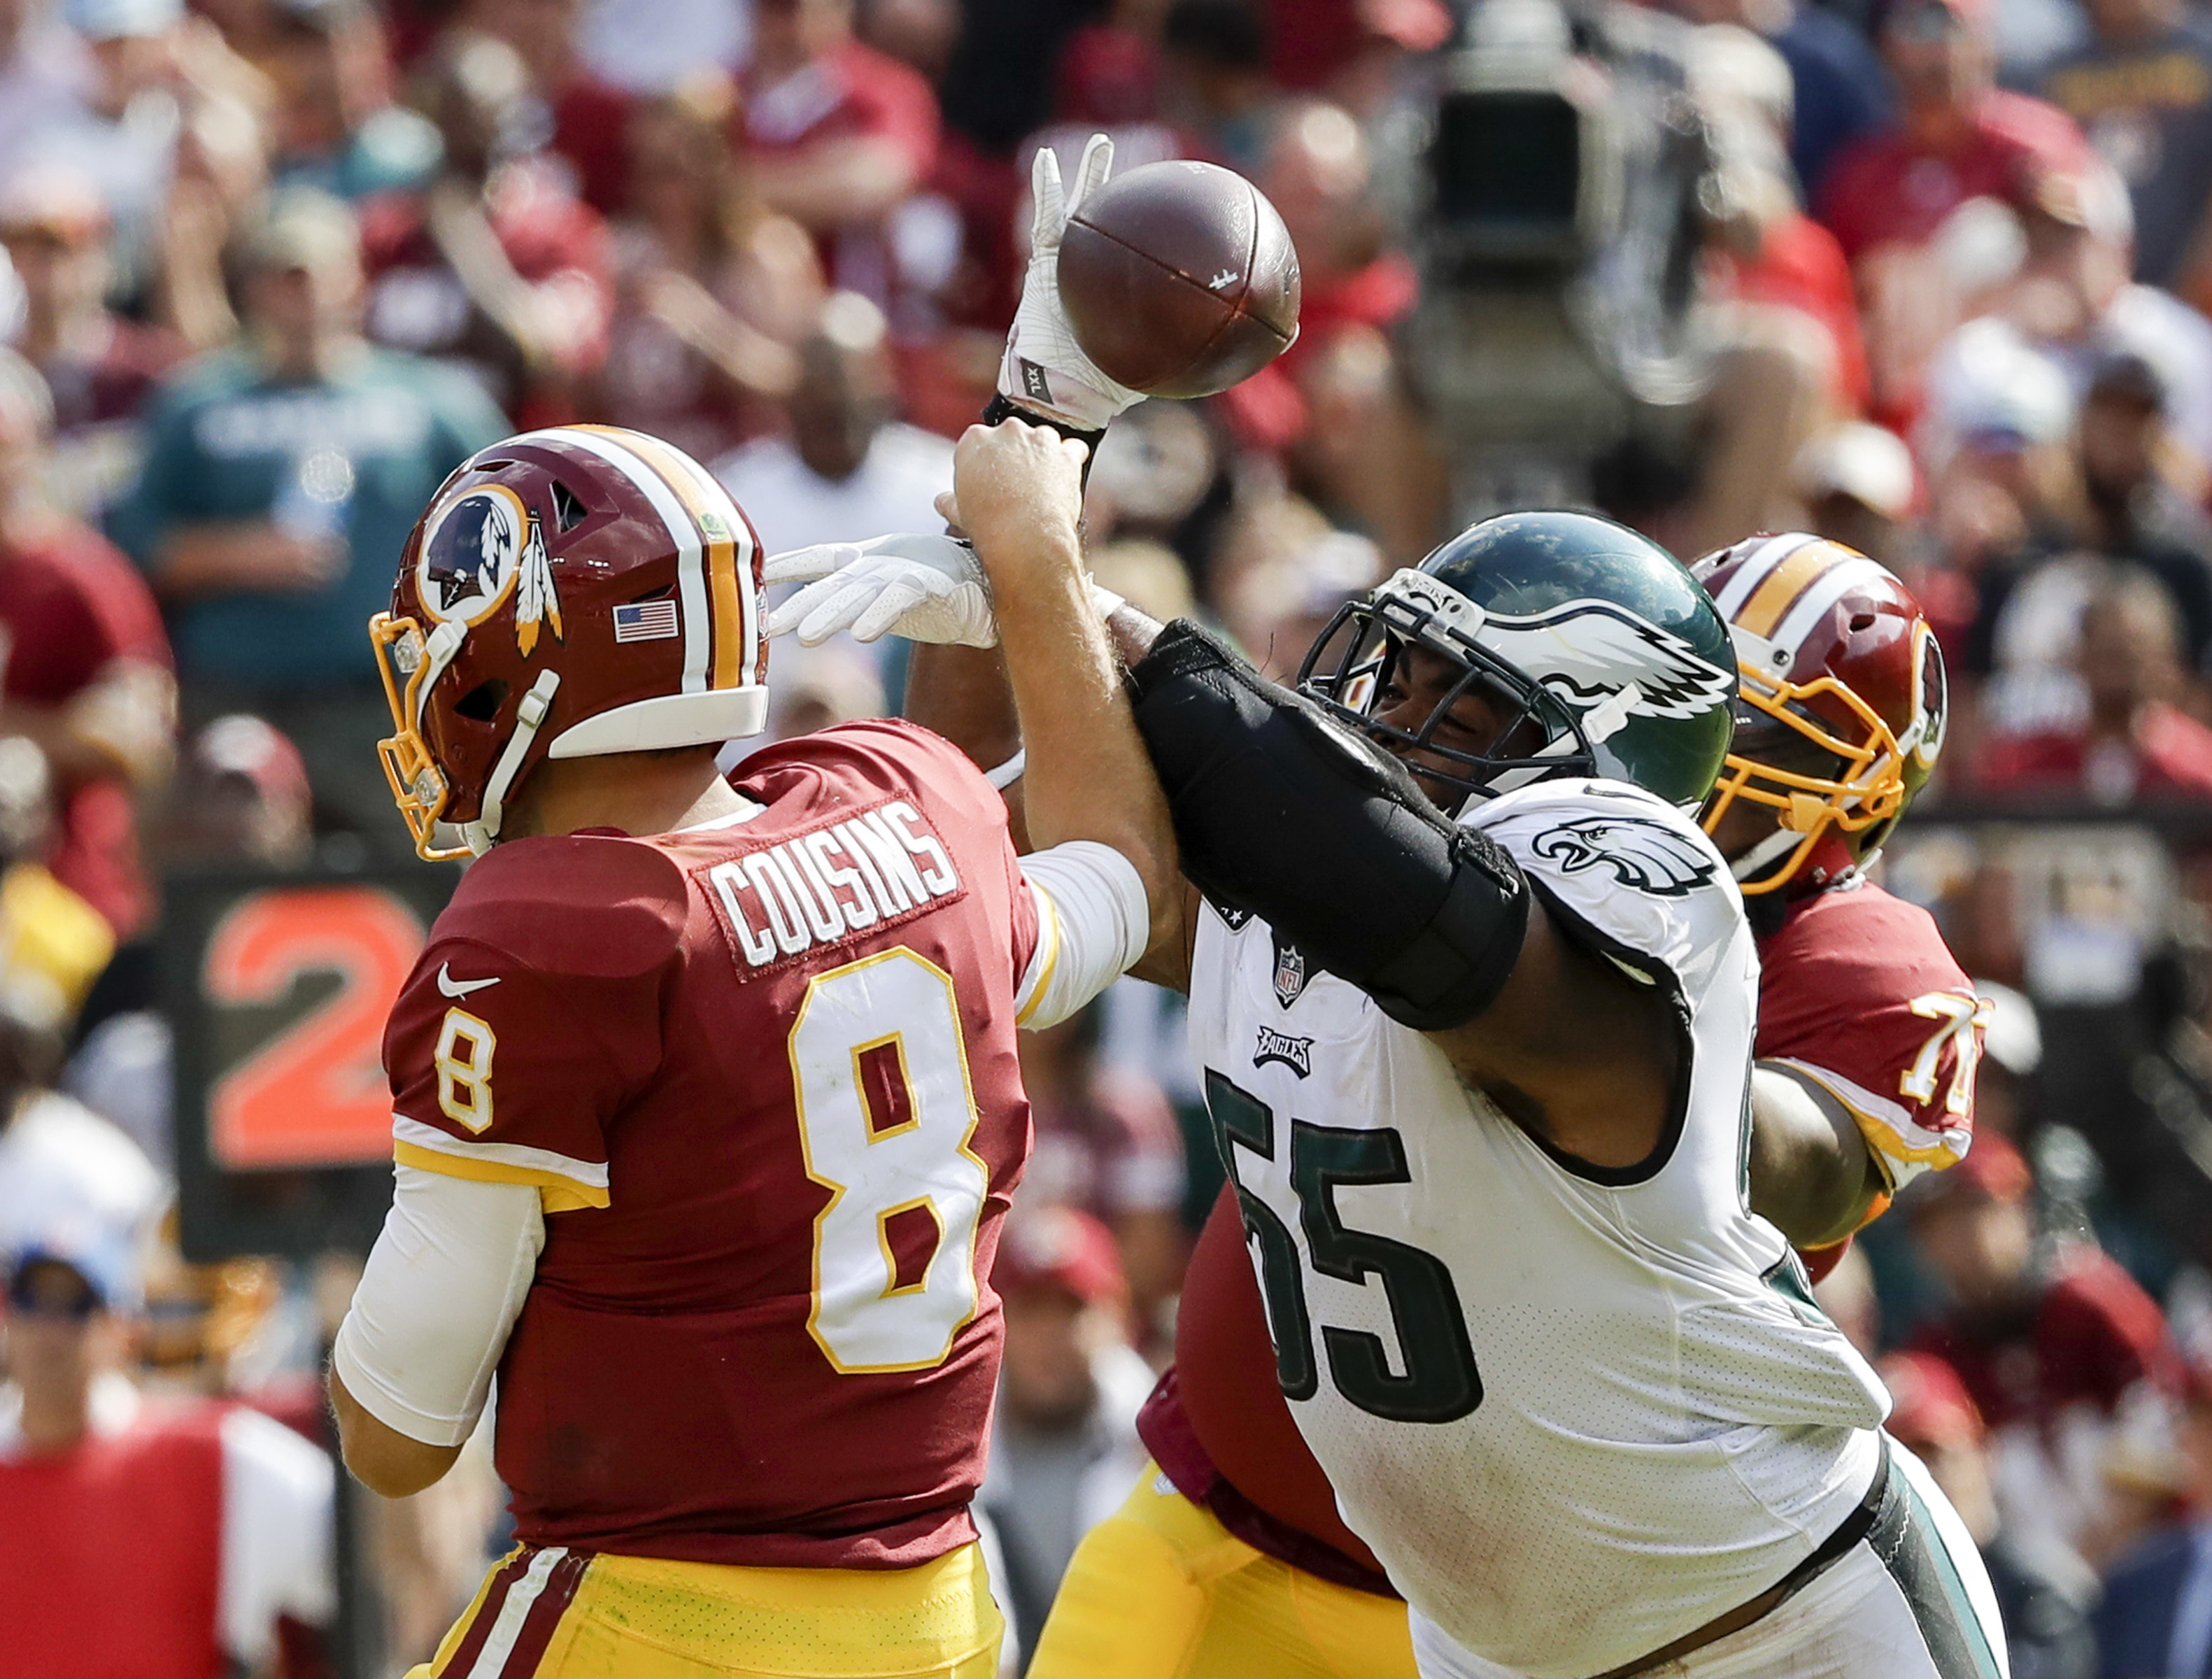 Eagles defensive end Brandon Graham forces a fumble on Washington Redskins quarterback Kirk Cousins and past offensive tackle Morgan Moses during the fourth quarter in Week 1. Fletcher Cox recovered the fumble and scored a touchdown. YONG KIM / Staff Photographer